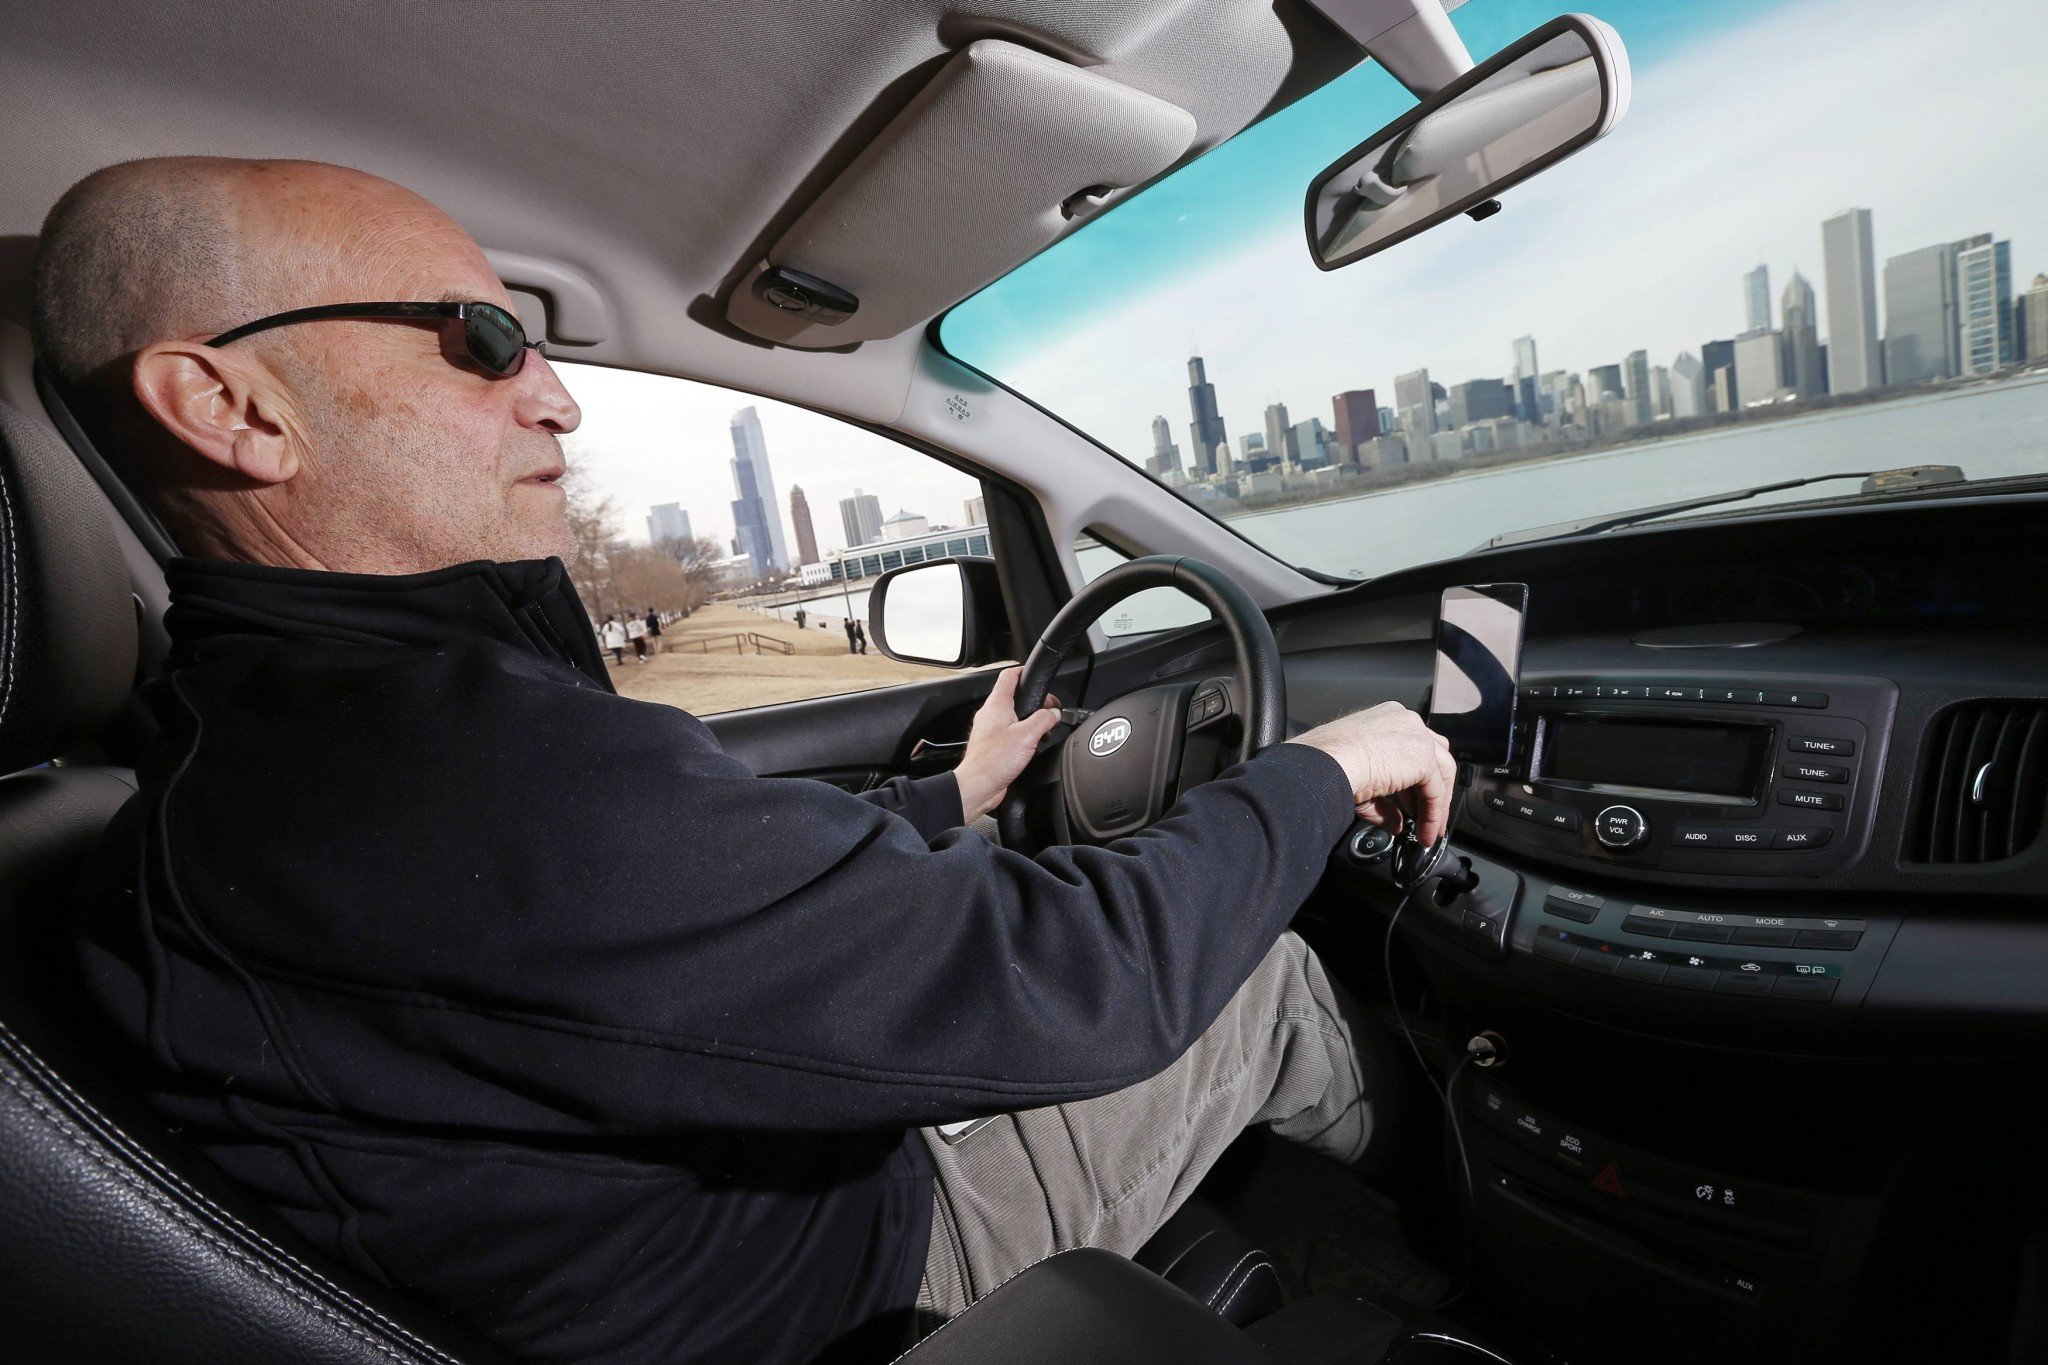 Uber driver Glen Snower sits in a BYD e6 electric car in Chicago, Illinois March 18, 2015. (REUTERS/Jim Young)